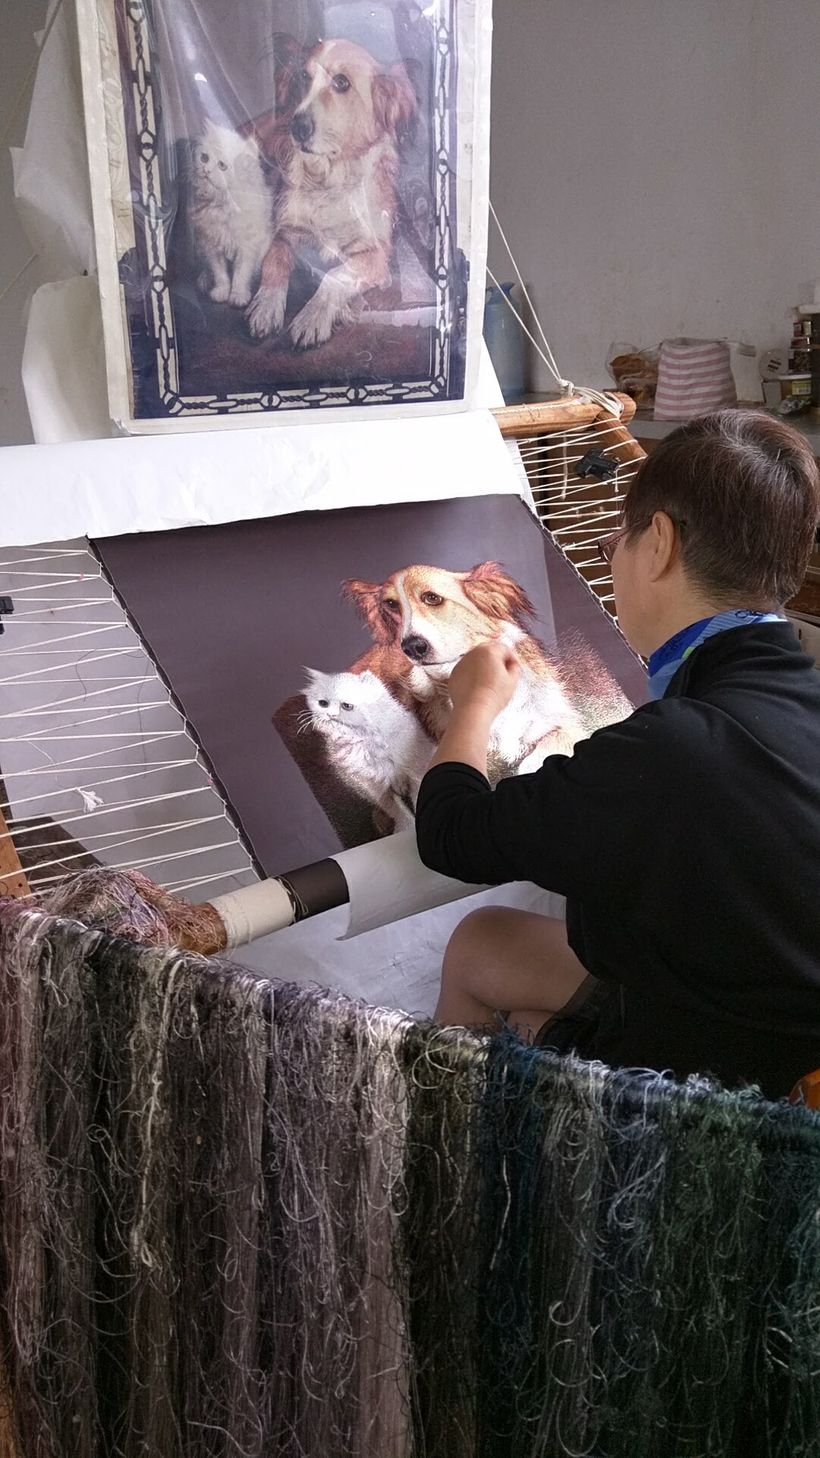 Animals and pets are popular embroidery subjects